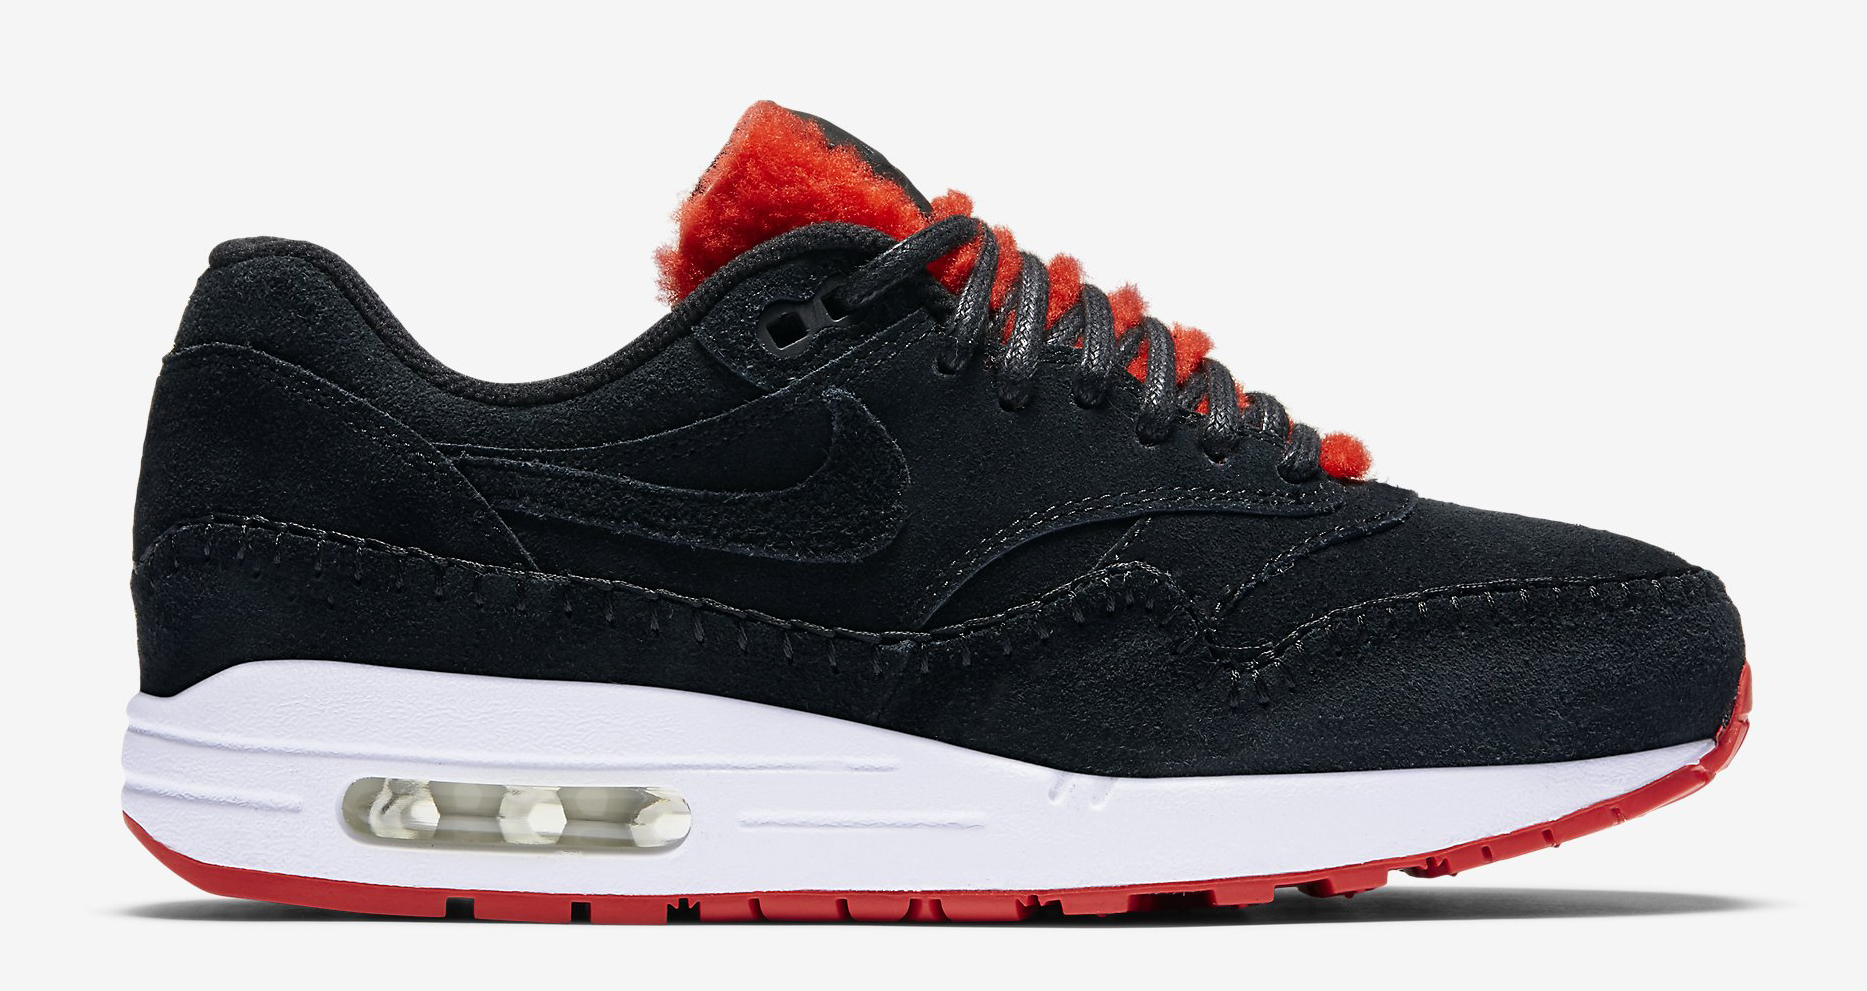 Nike Air Max 1 Sherpa Black Red 454746-010 Profile